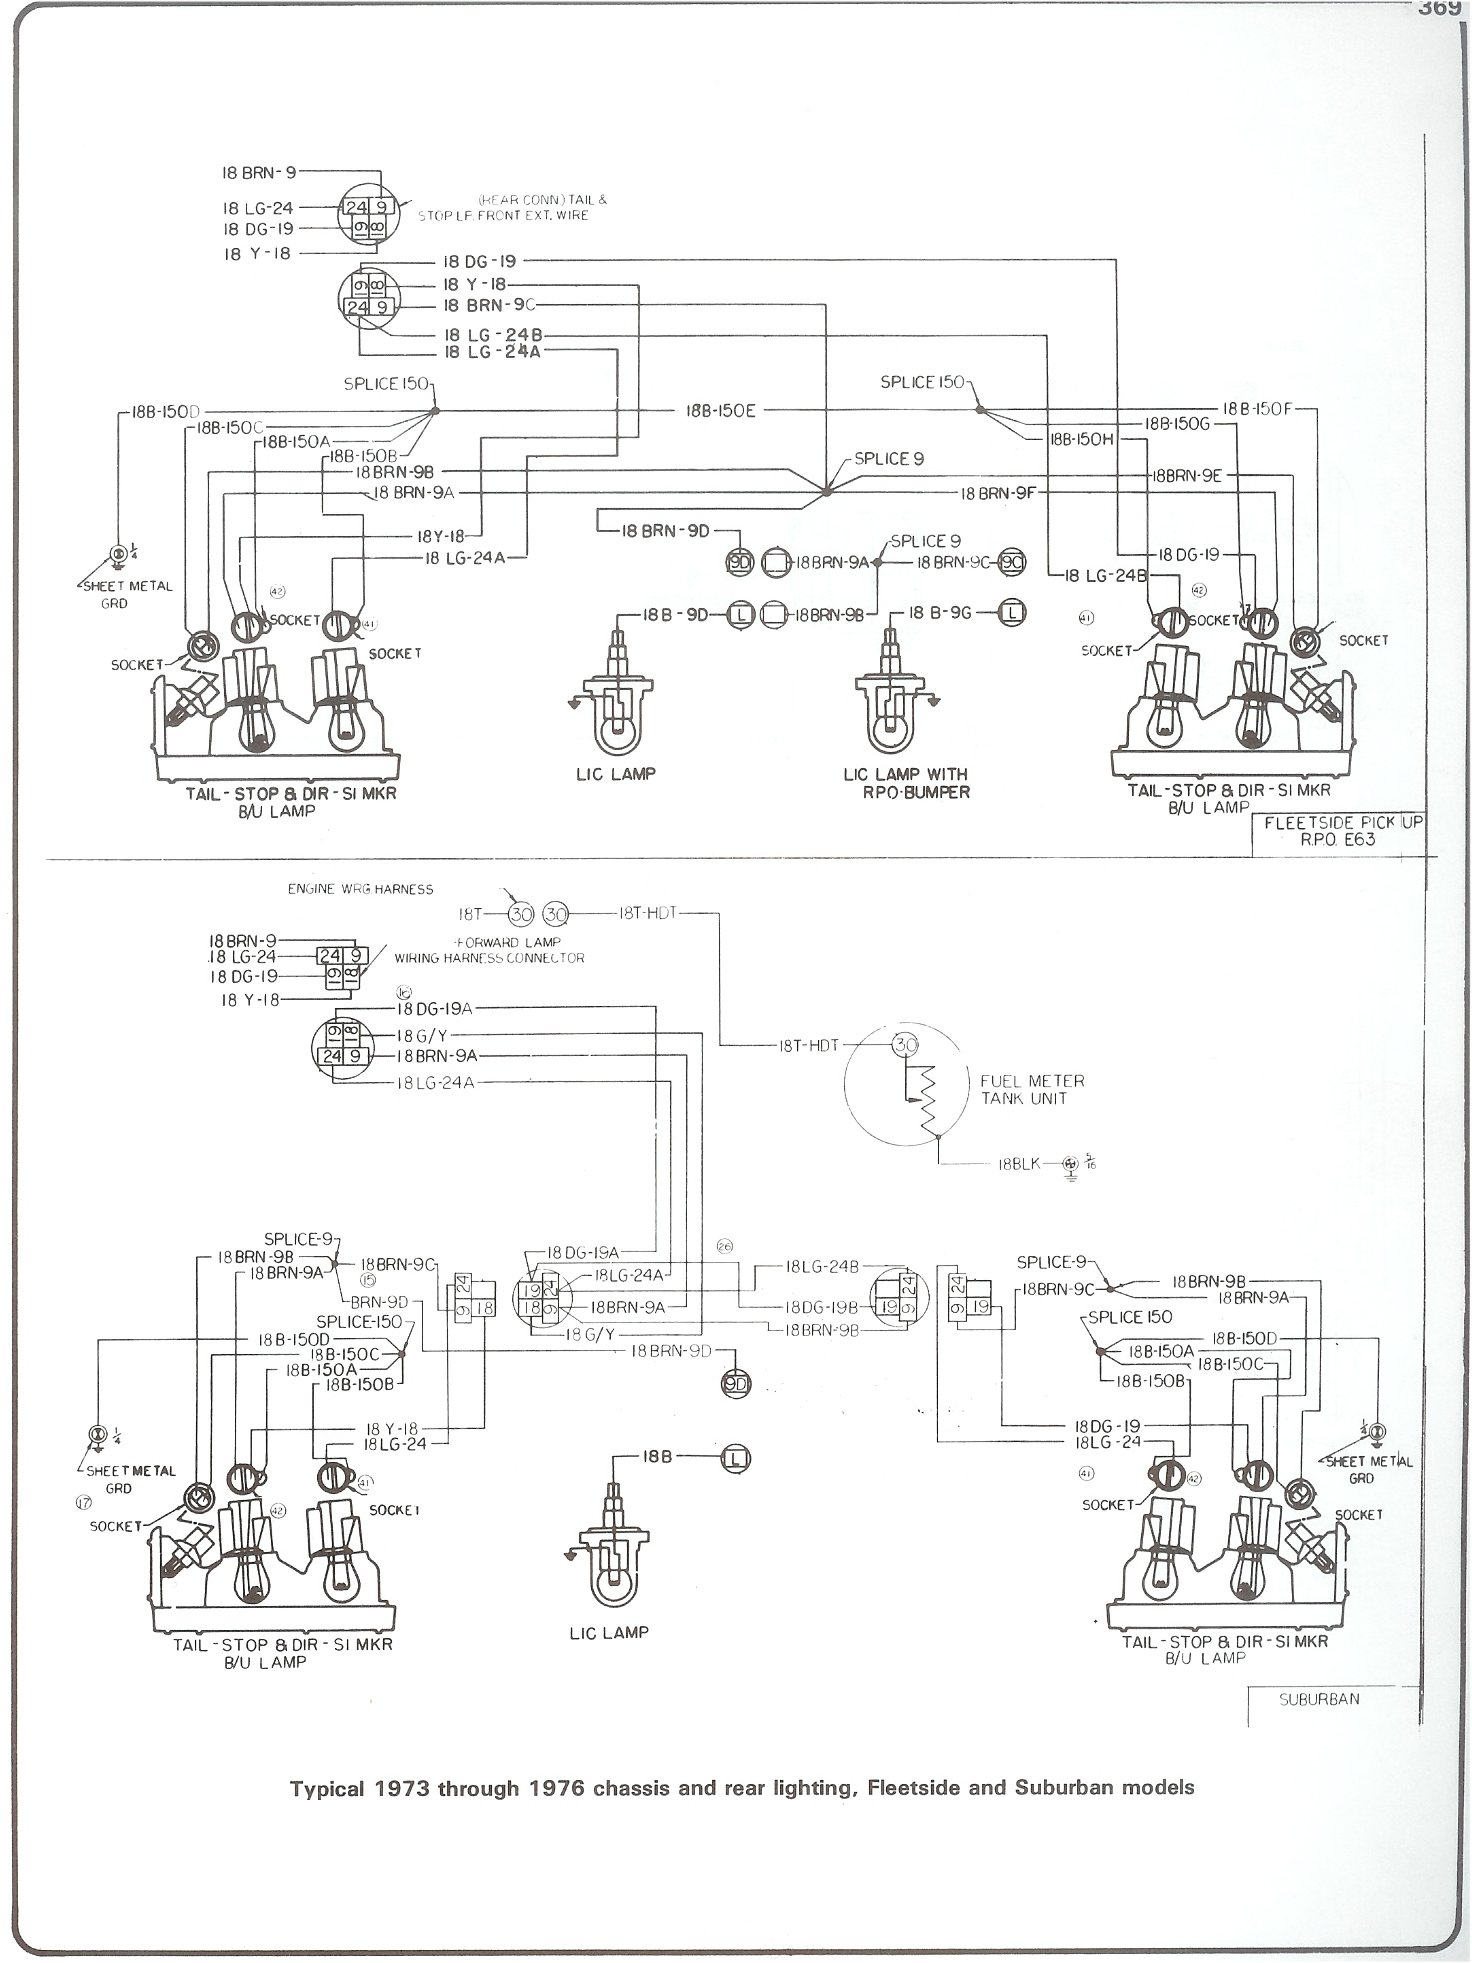 wiring diagram 19890 chevy truck chime diagram u2022 mifinder co 1987 chevy silverado radio wiring diagram lifted 87 chevy truck [ 1472 x 1963 Pixel ]